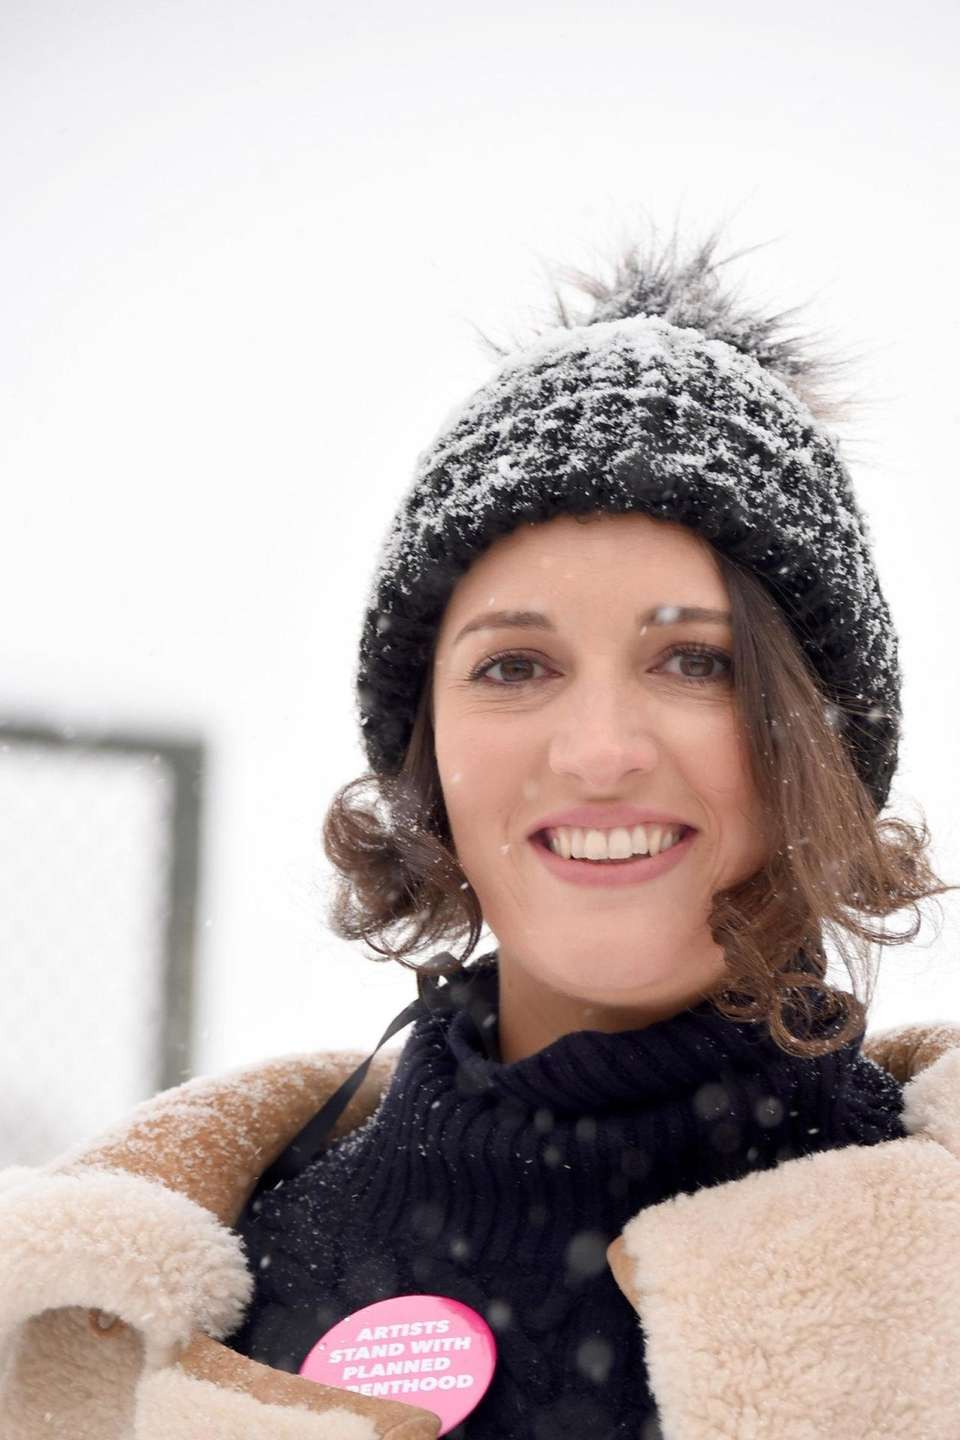 PARK CITY, UT - JANUARY 20: Actor Phoebe